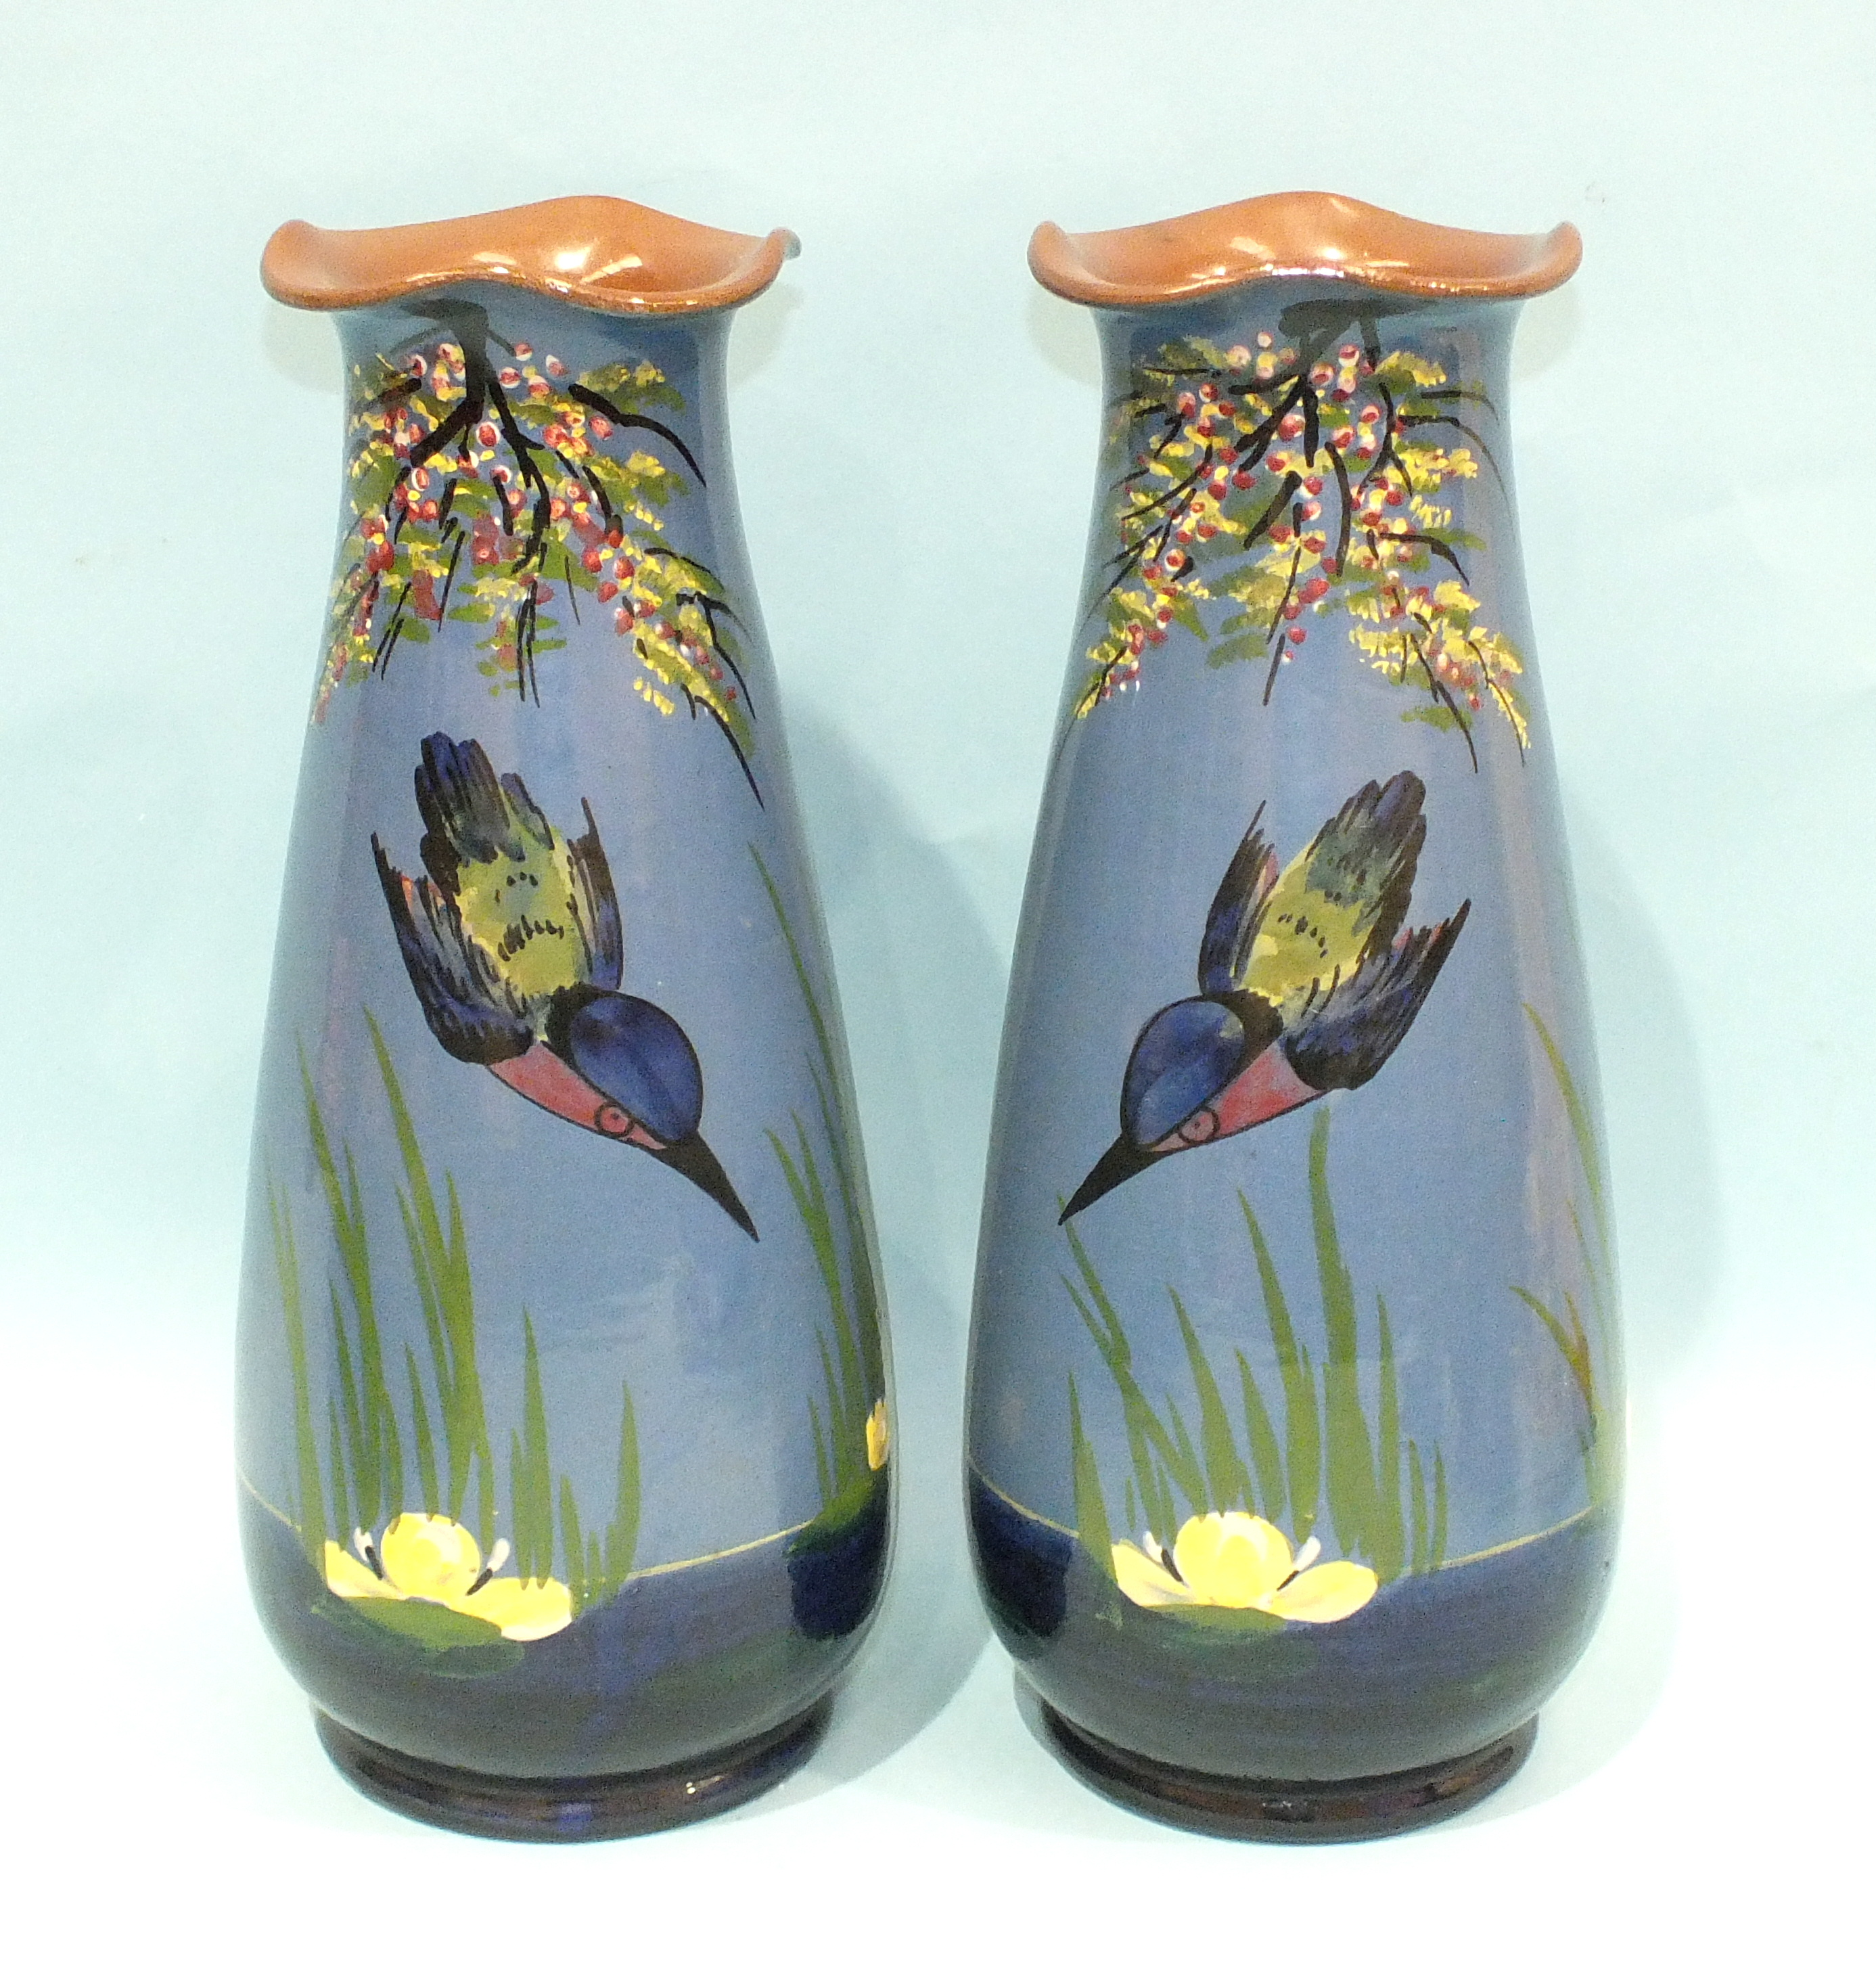 Lot 68 - A pair of Longpark Torquay Pottery baluster vases decorated with diving kingfishers, 31cm high and a